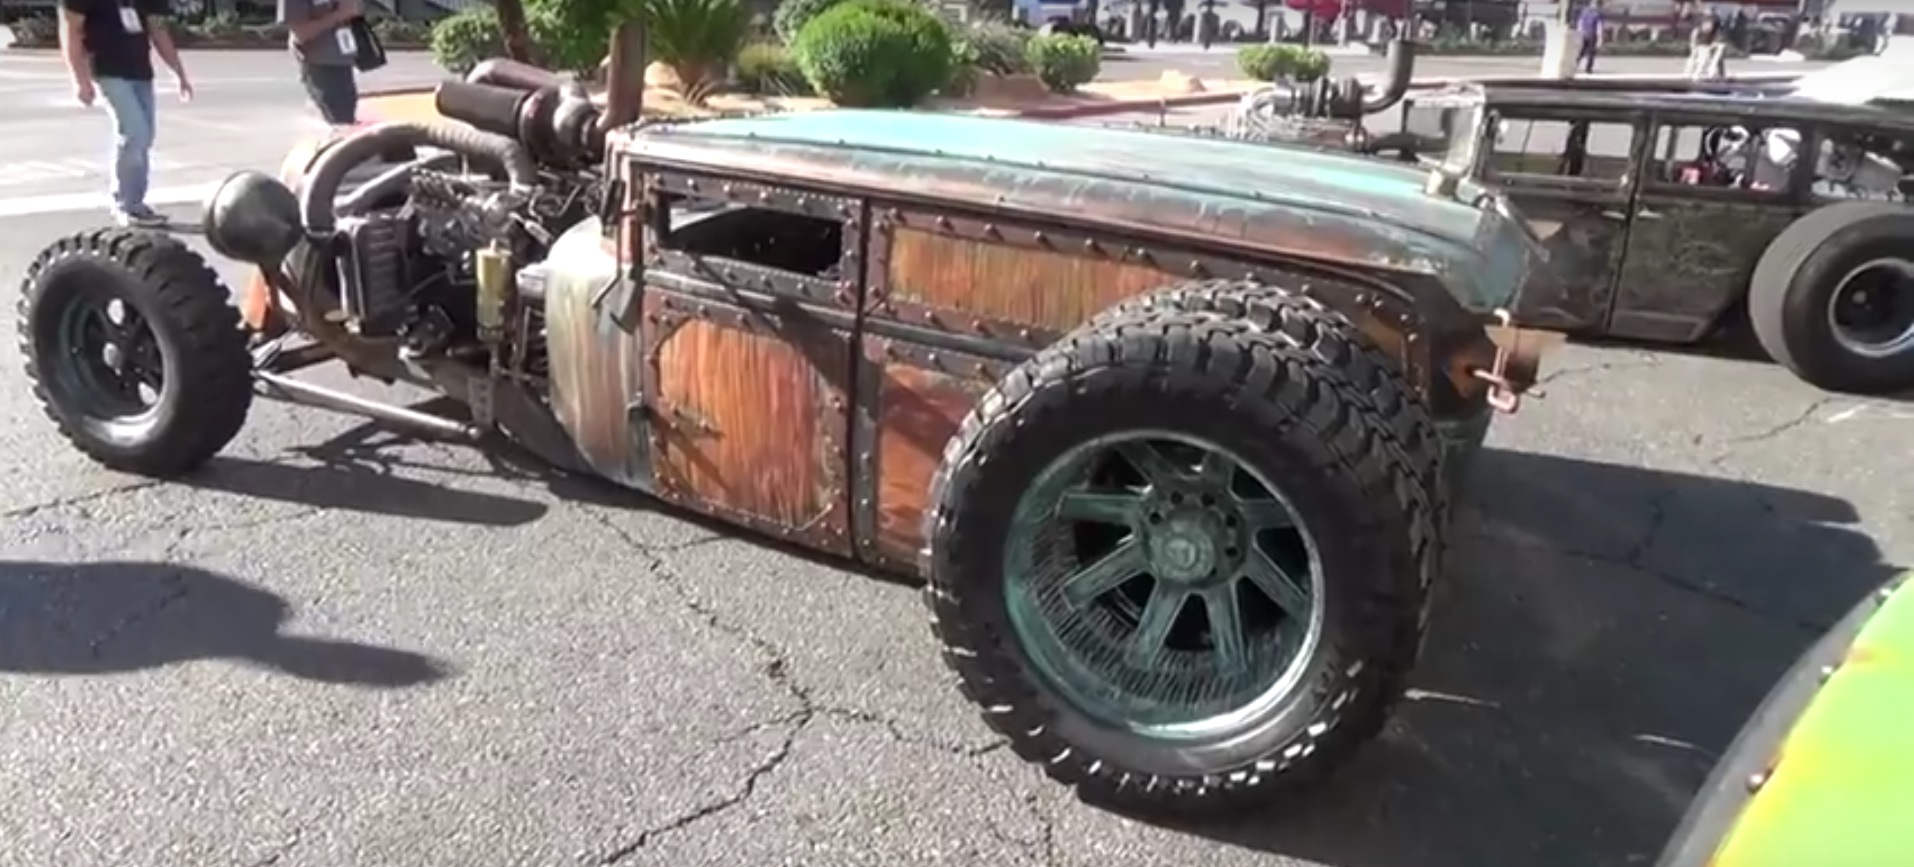 WelderUp\'s Dually Rat Rods Have the Dieselpunk Look Nailed ...